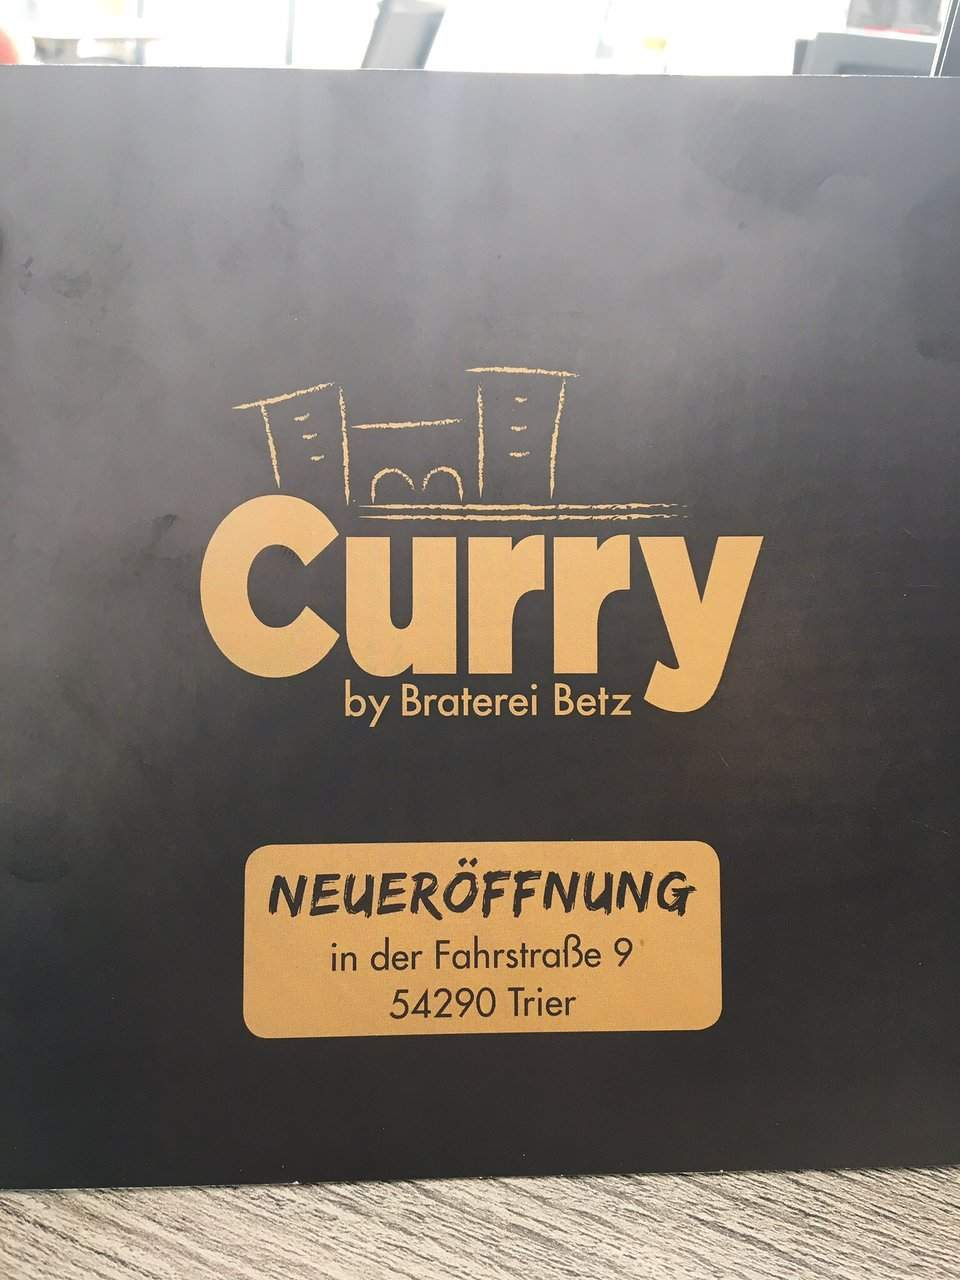 curry by braterei betz